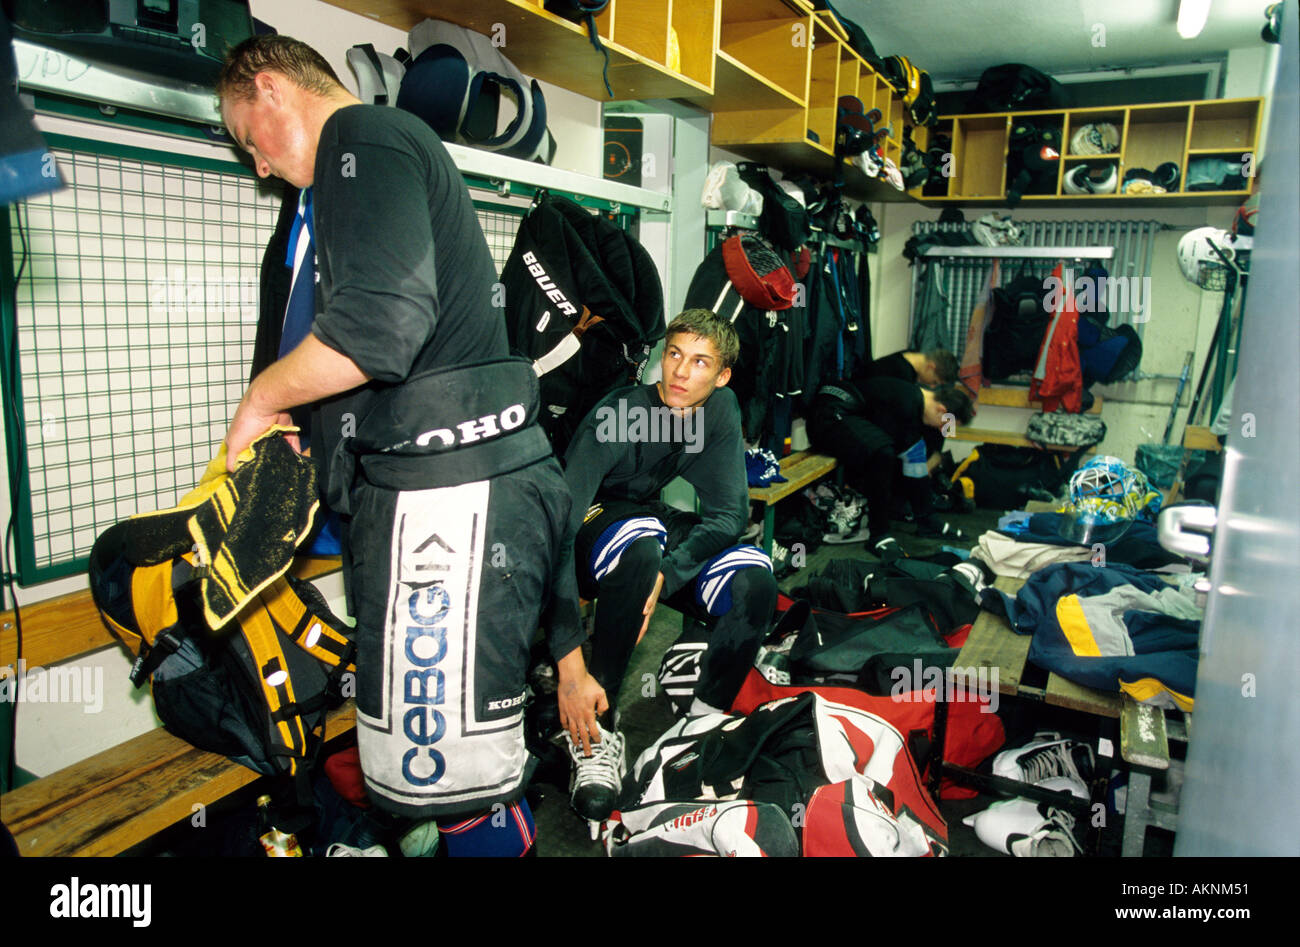 Germany Free time Young men after playing ice hockey in the cubicle  - Stock Image